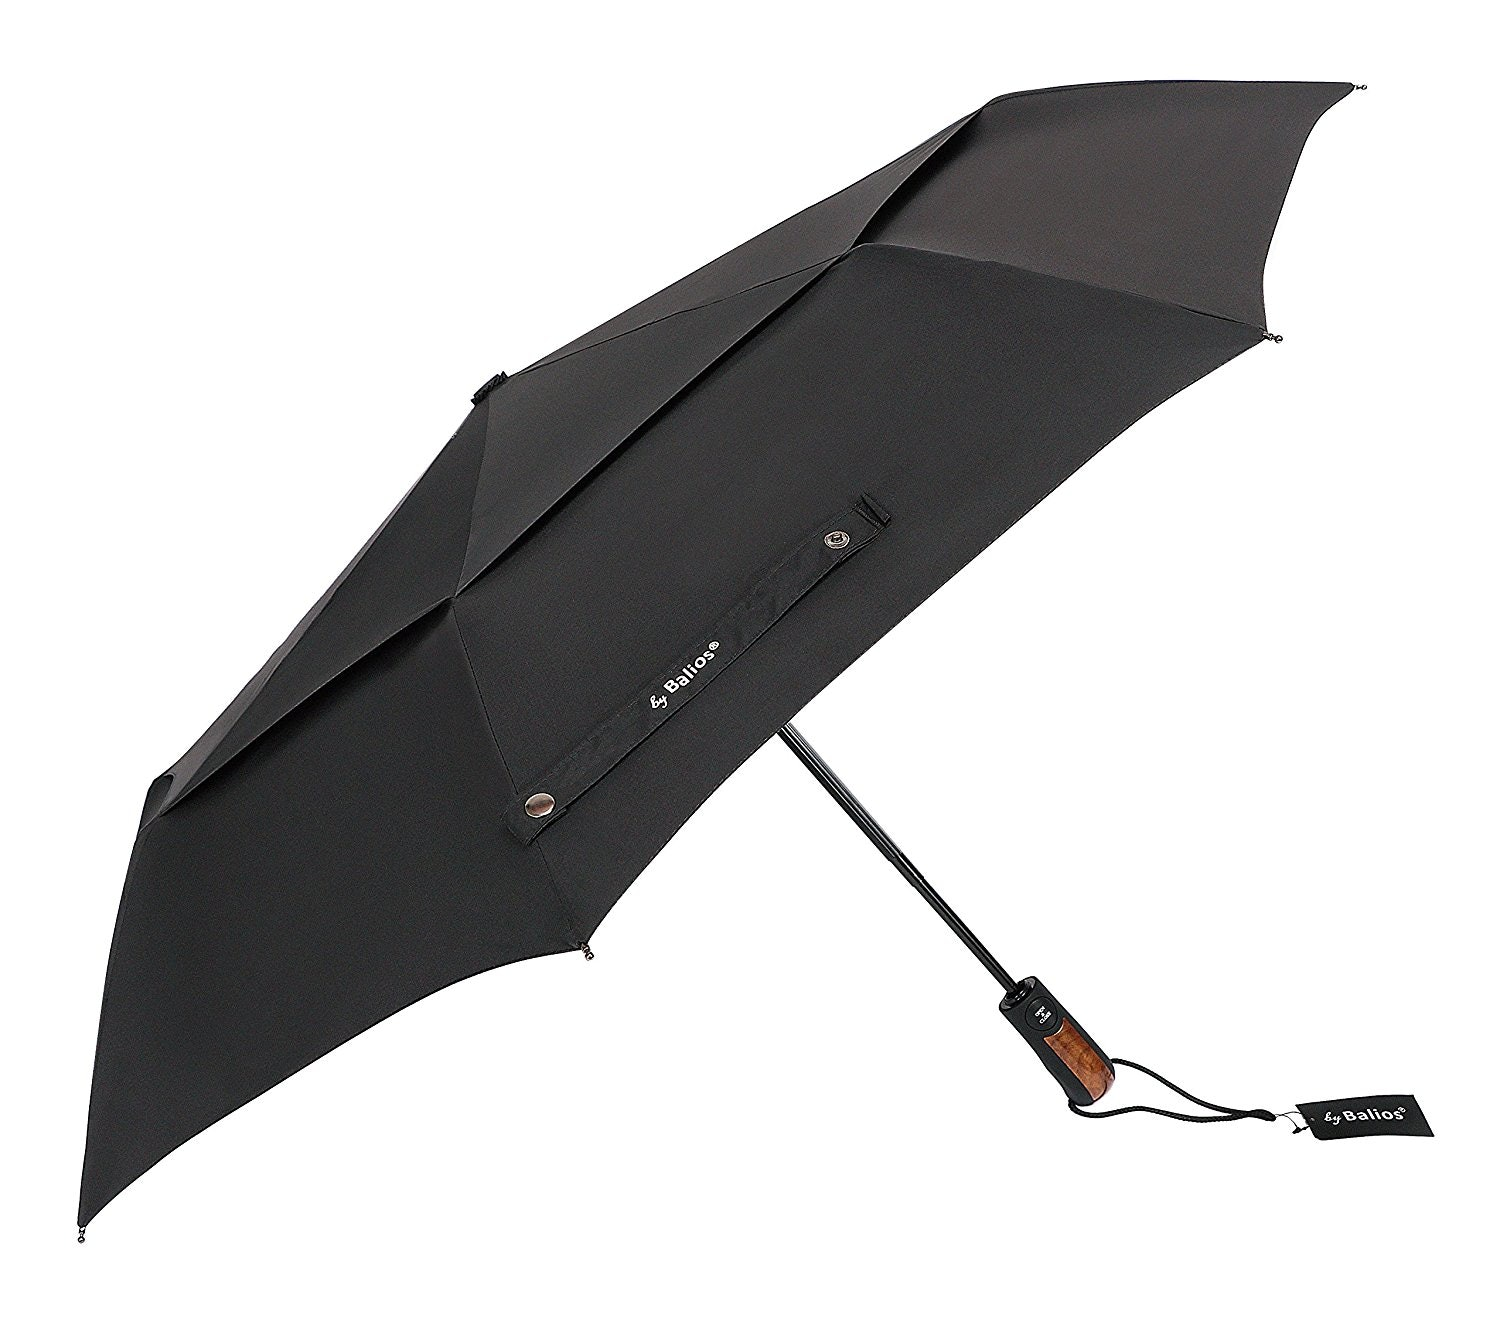 2. Goggles Umbrella